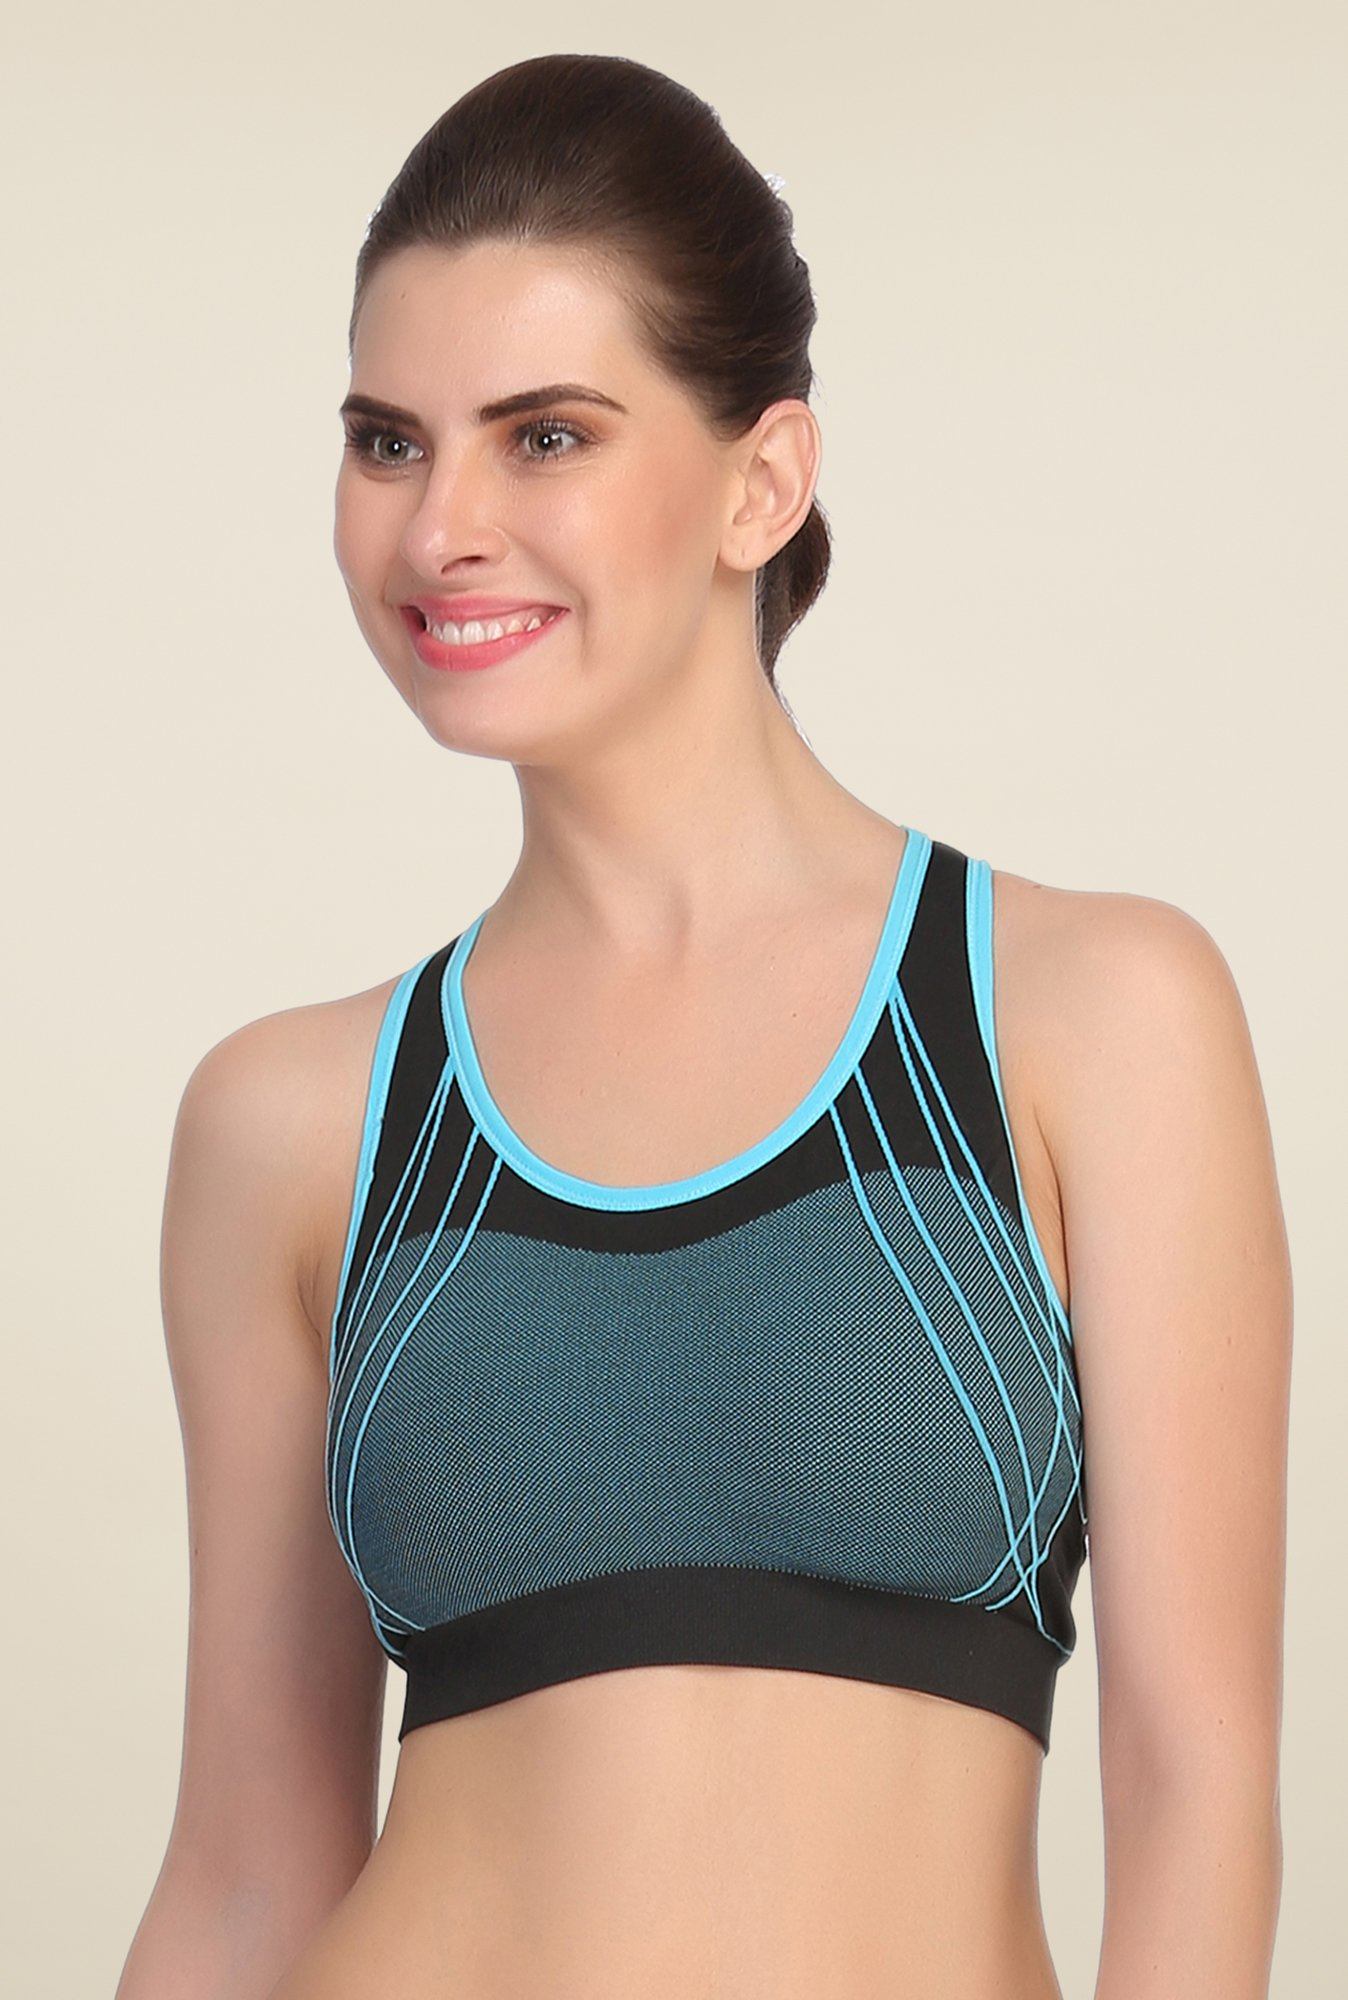 Clovia Blue & Black Comfy Padded Sports Bra